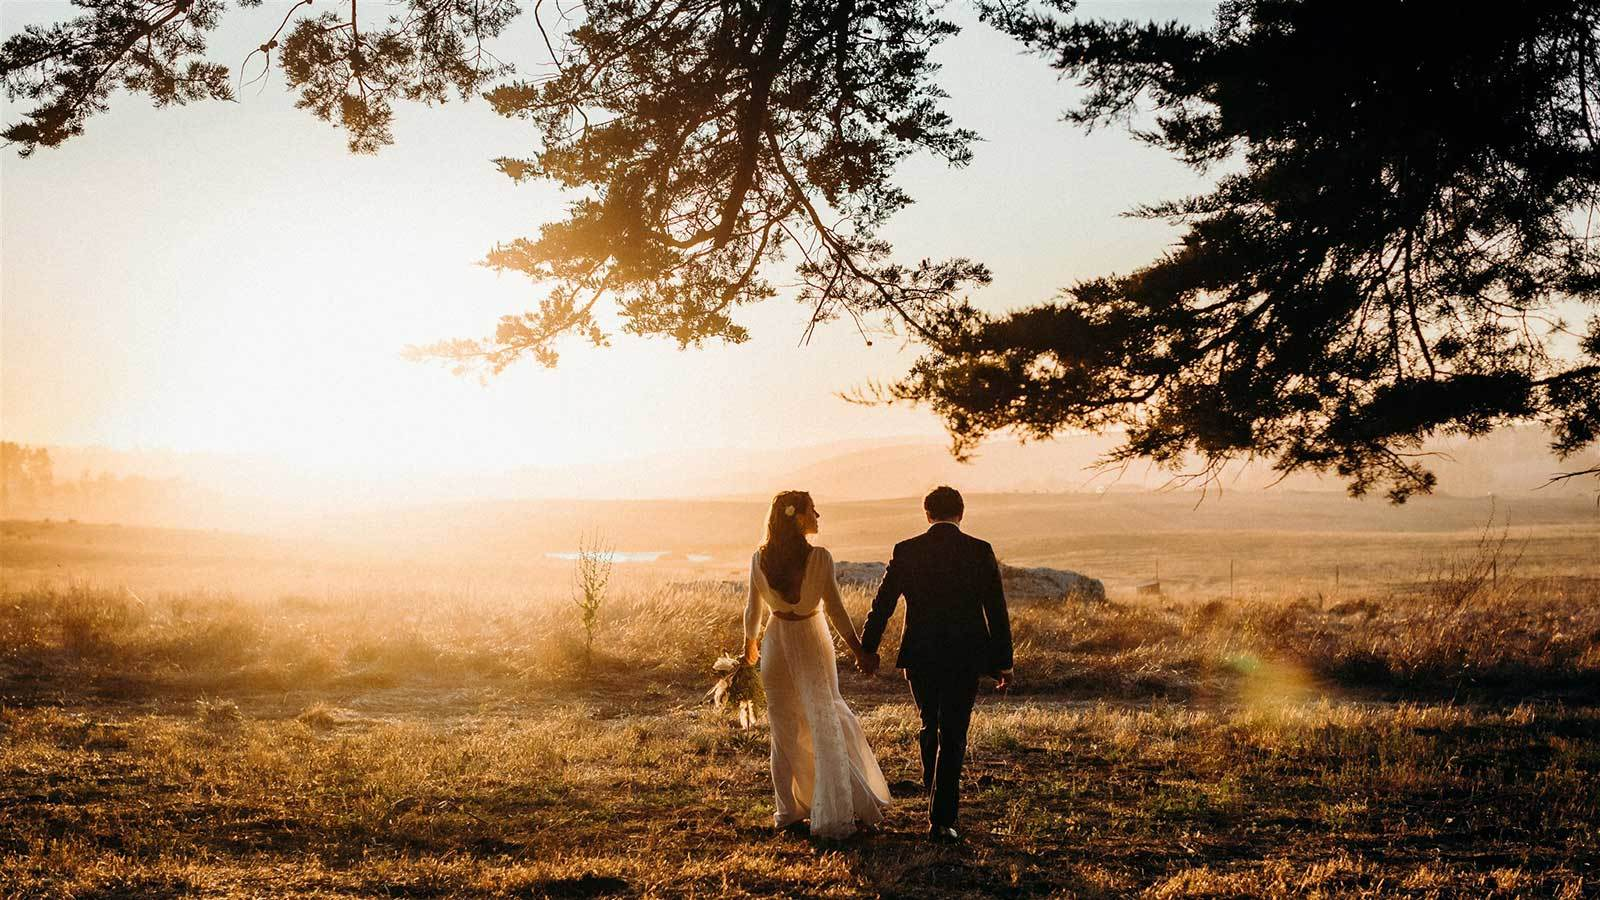 Stemple Creek Ranch Wedding Venue